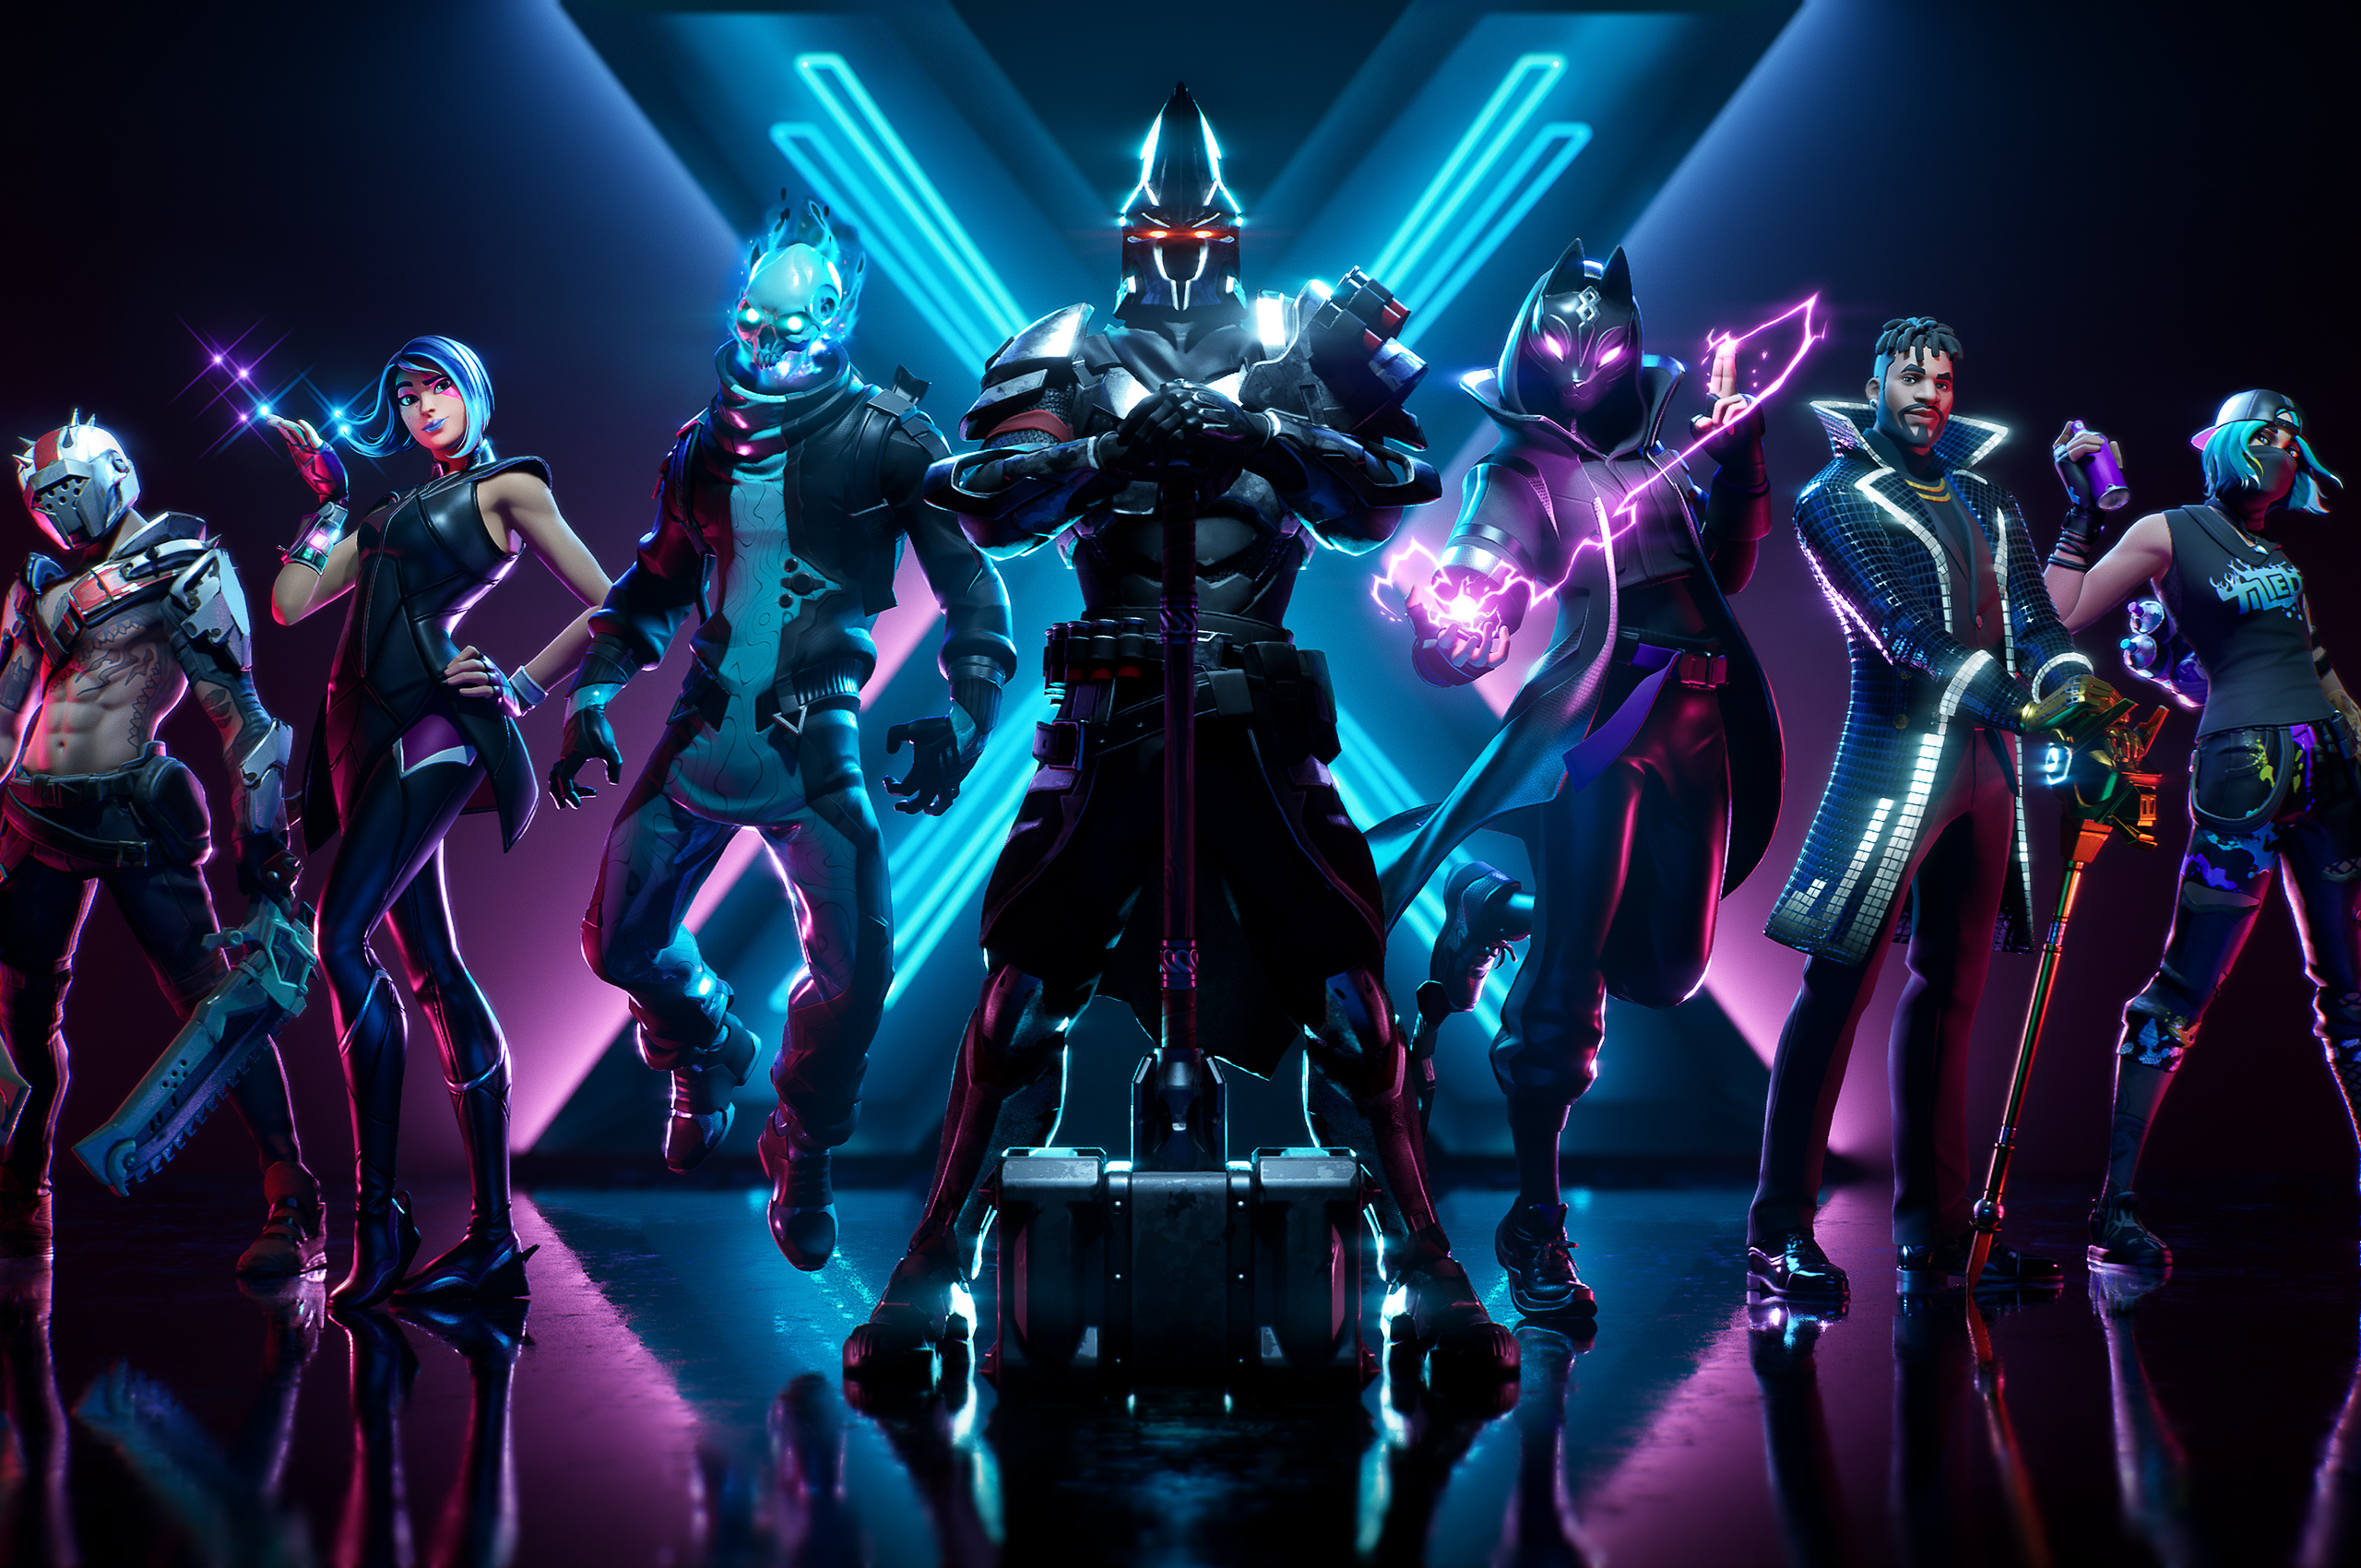 2560x1700 Fortnite Season X Chromebook Pixel Hd 4k Wallpapers Images Backgrounds Photos And Pictures